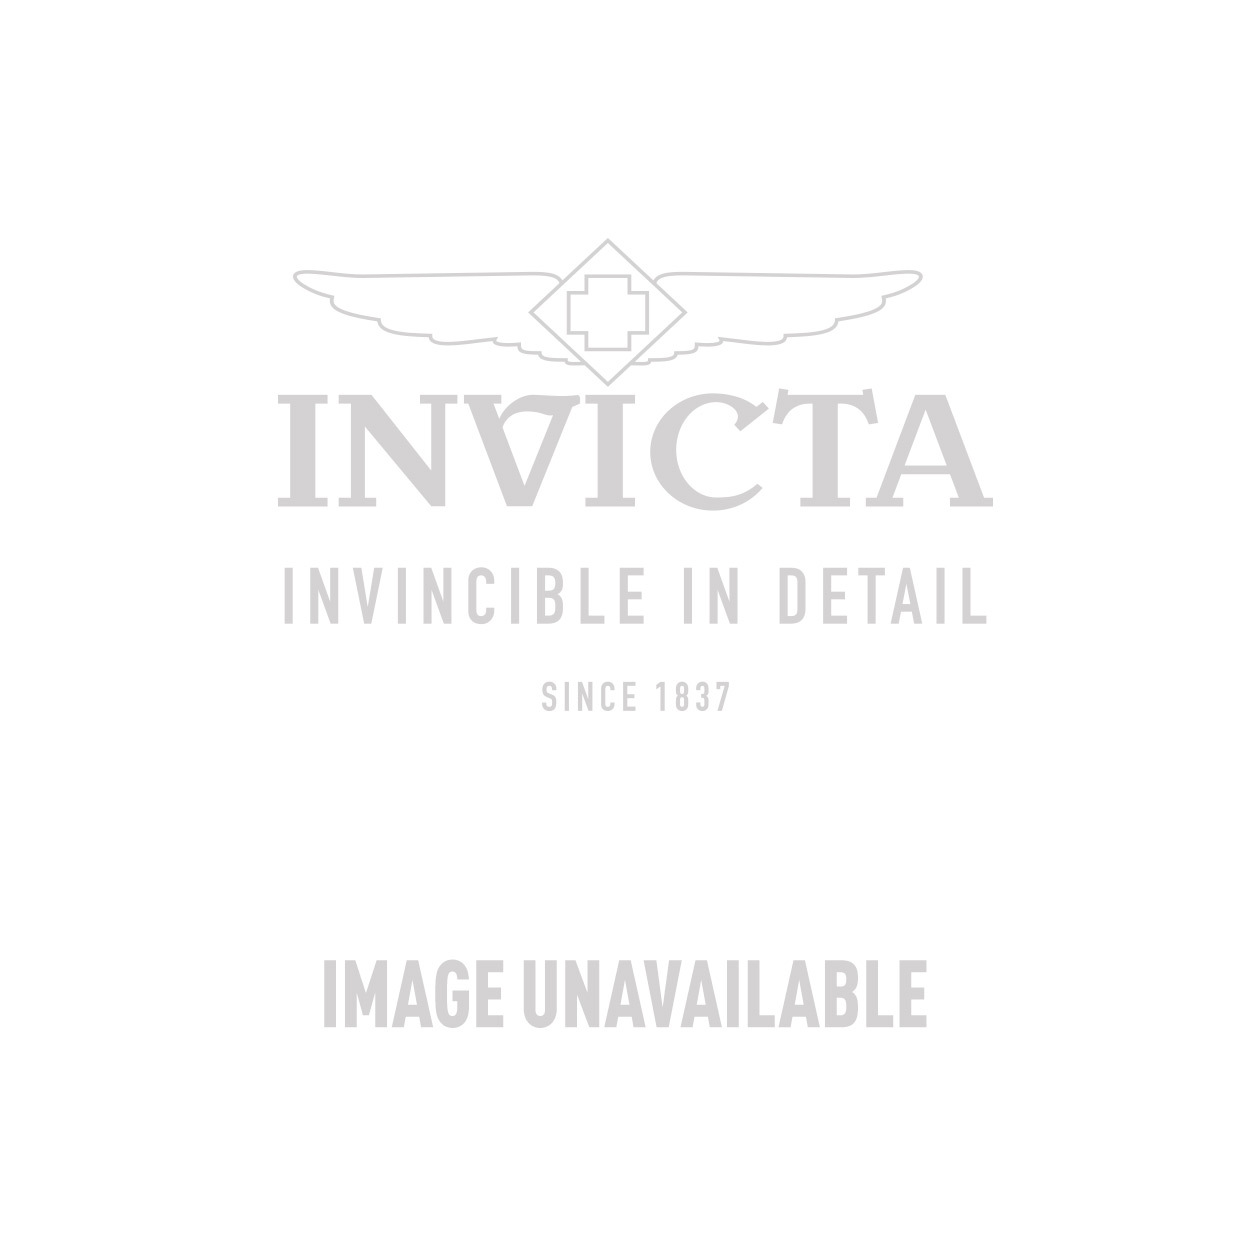 Invicta 21cm Men's Bracelets in Rhodium Aged - Model J0312